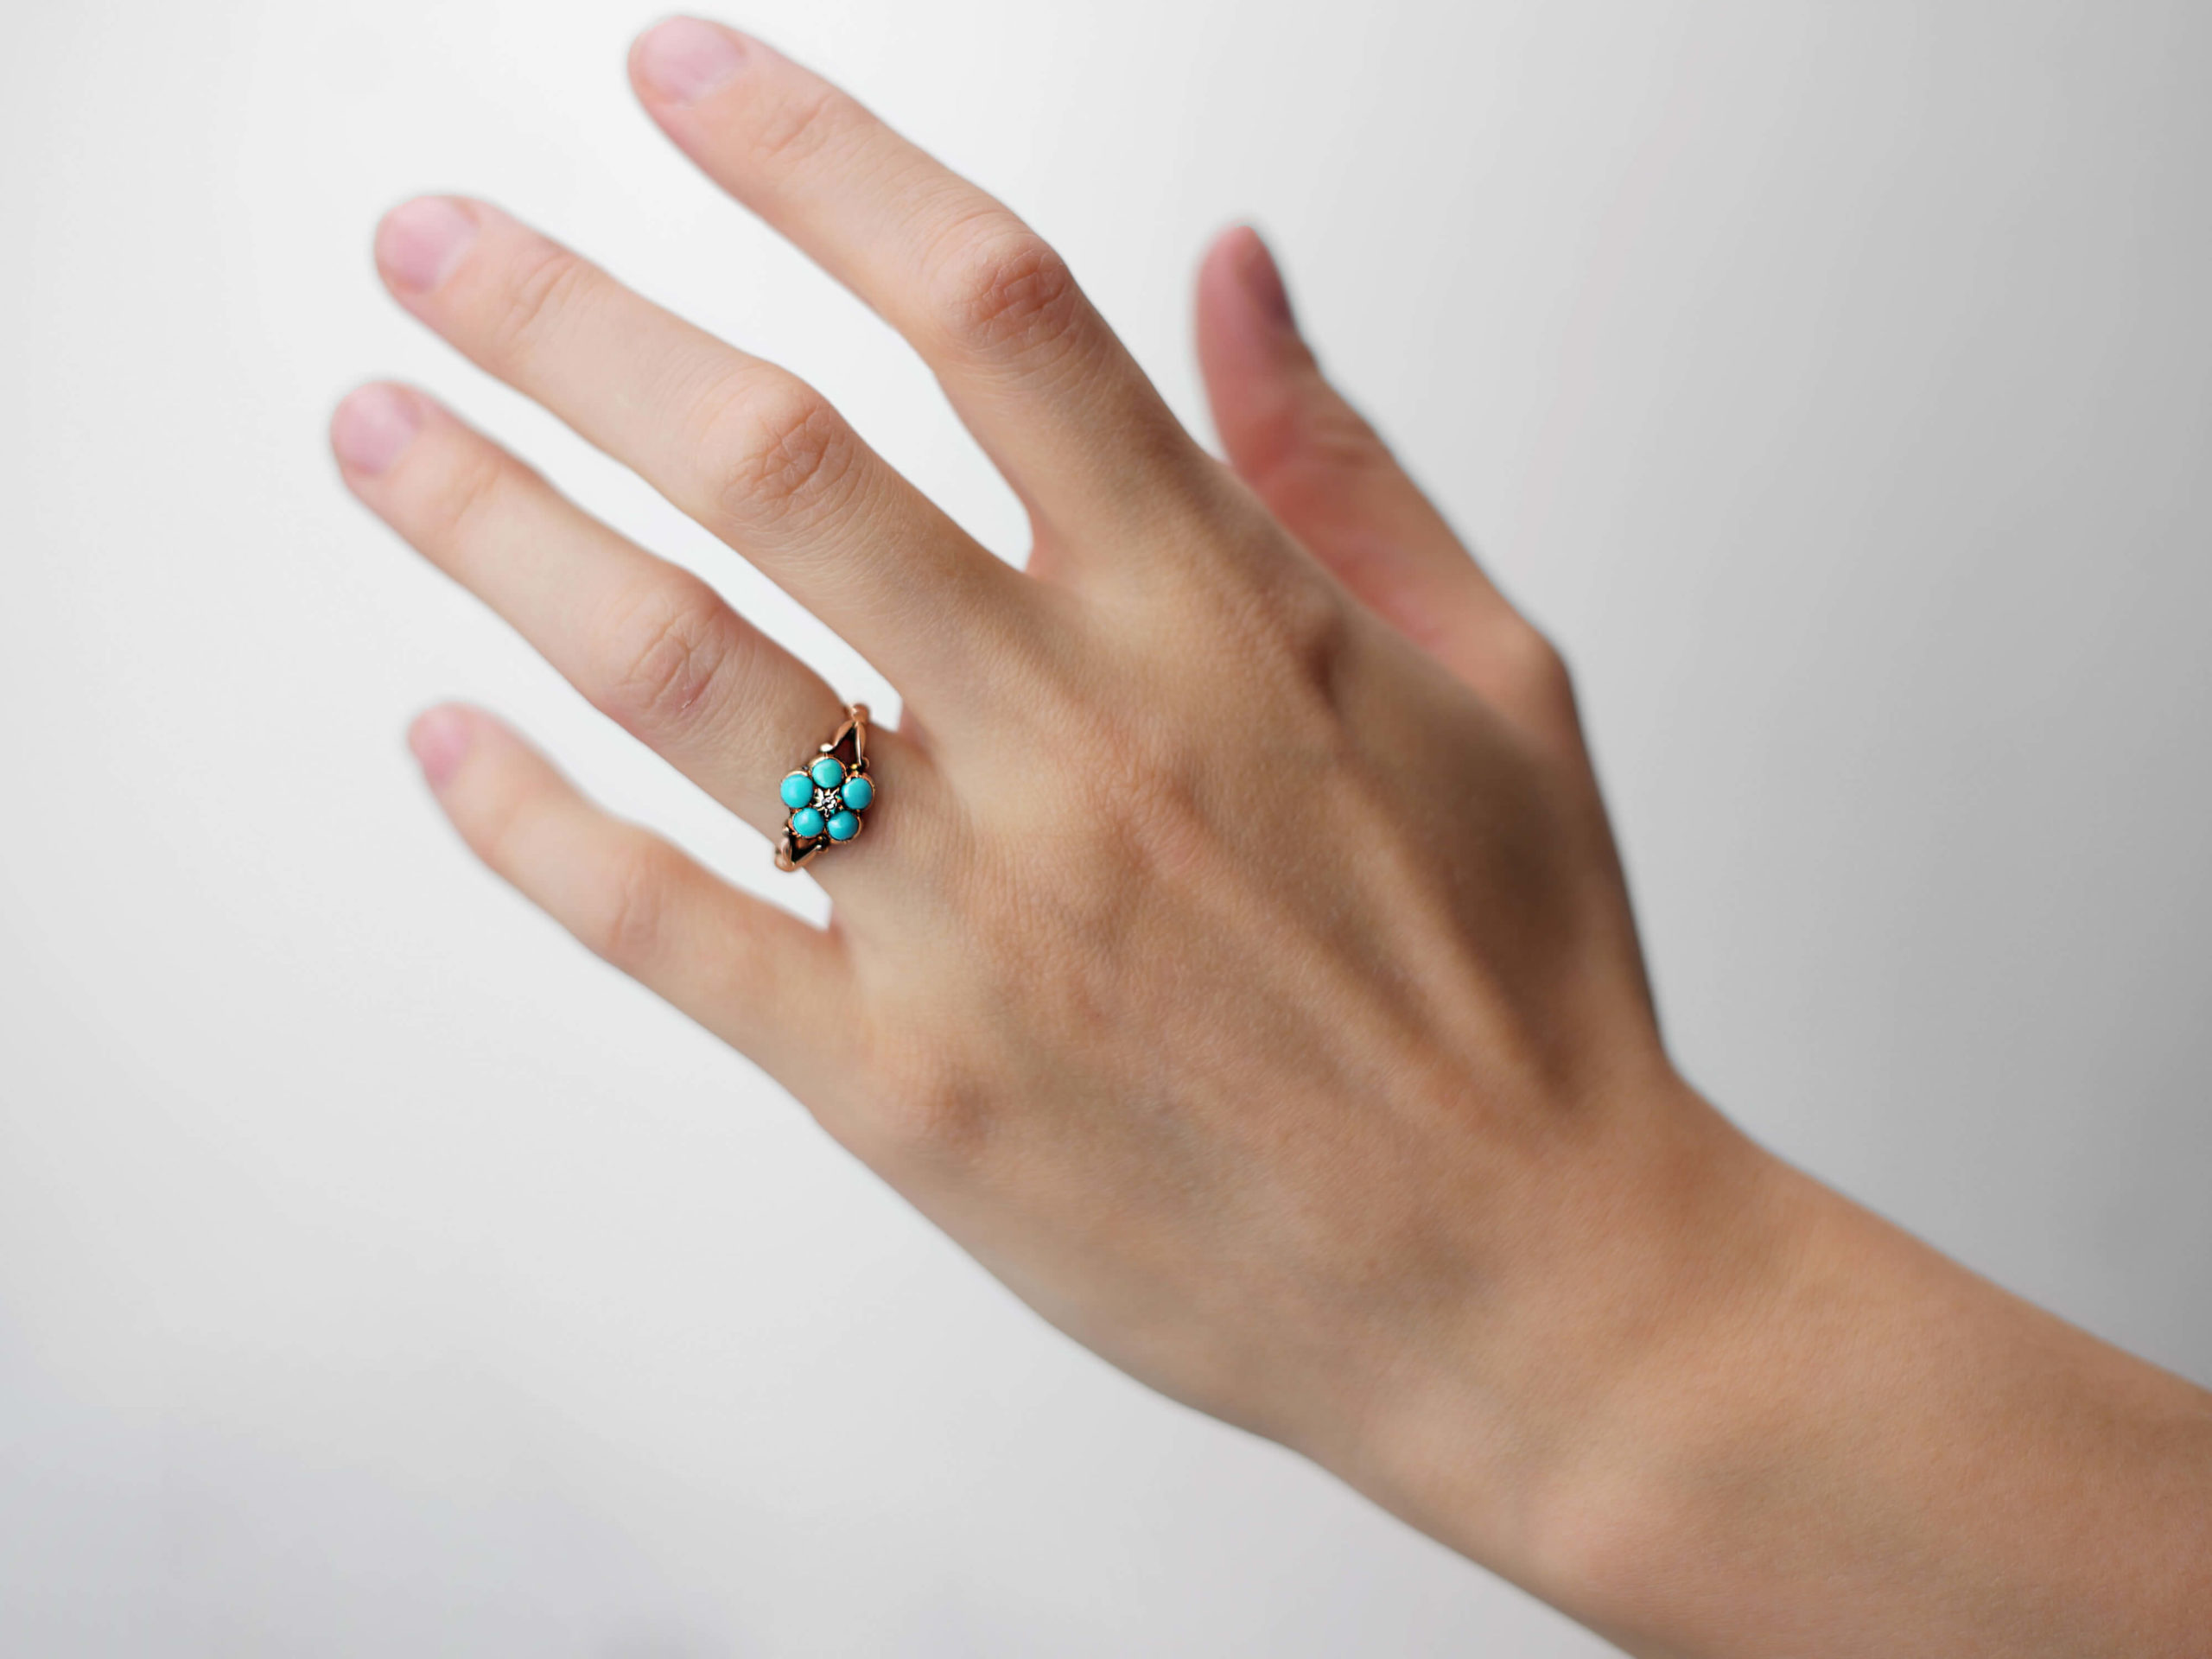 Victorian 9ct Gold Forget Me Not Flower Ring set with Turquoise & a Rose Diamond